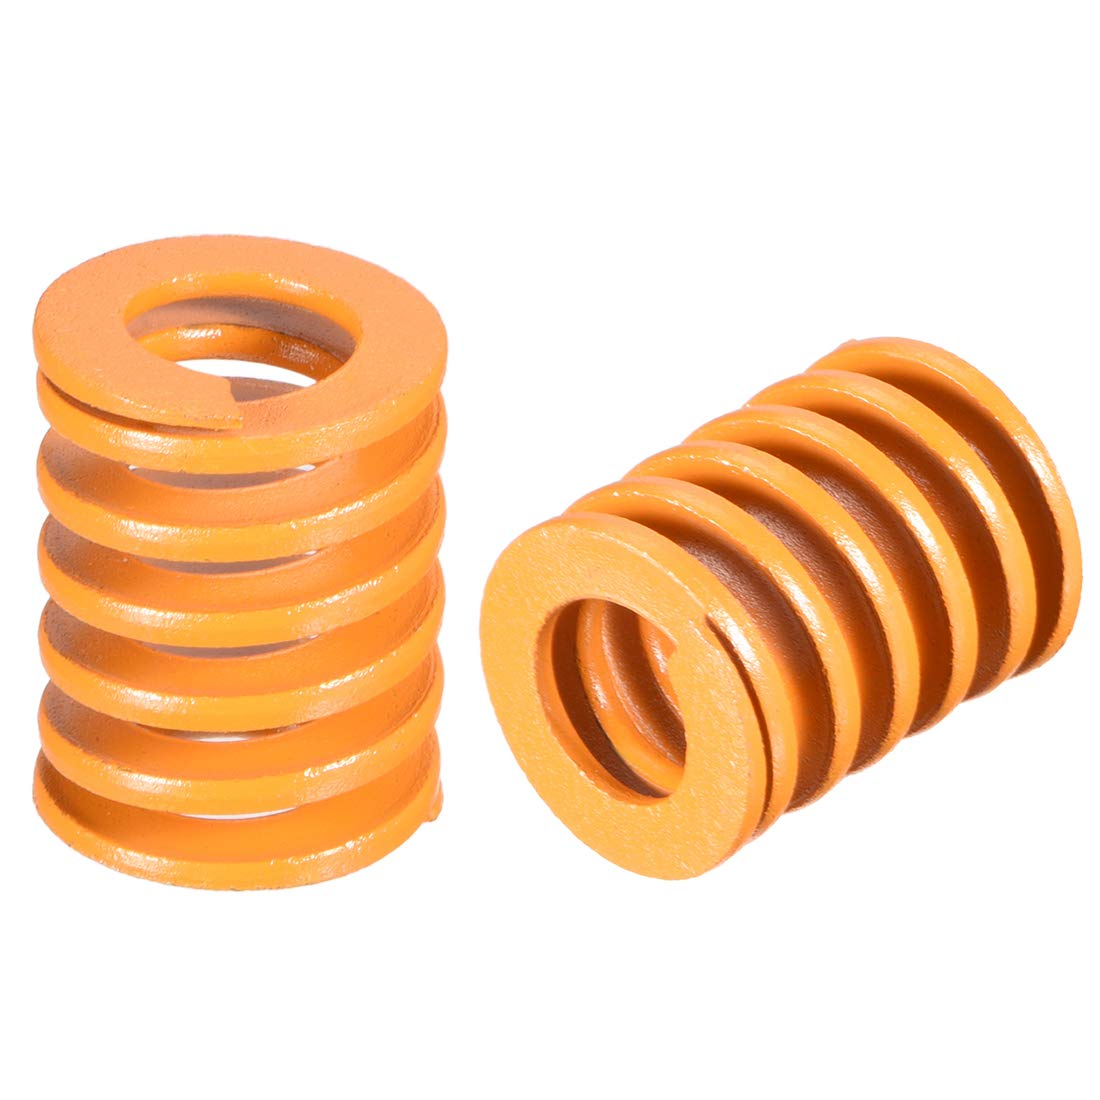 uxcell 8mm OD 20mm Long Light Load Compression Mould Die Spring Yellow 10pcs